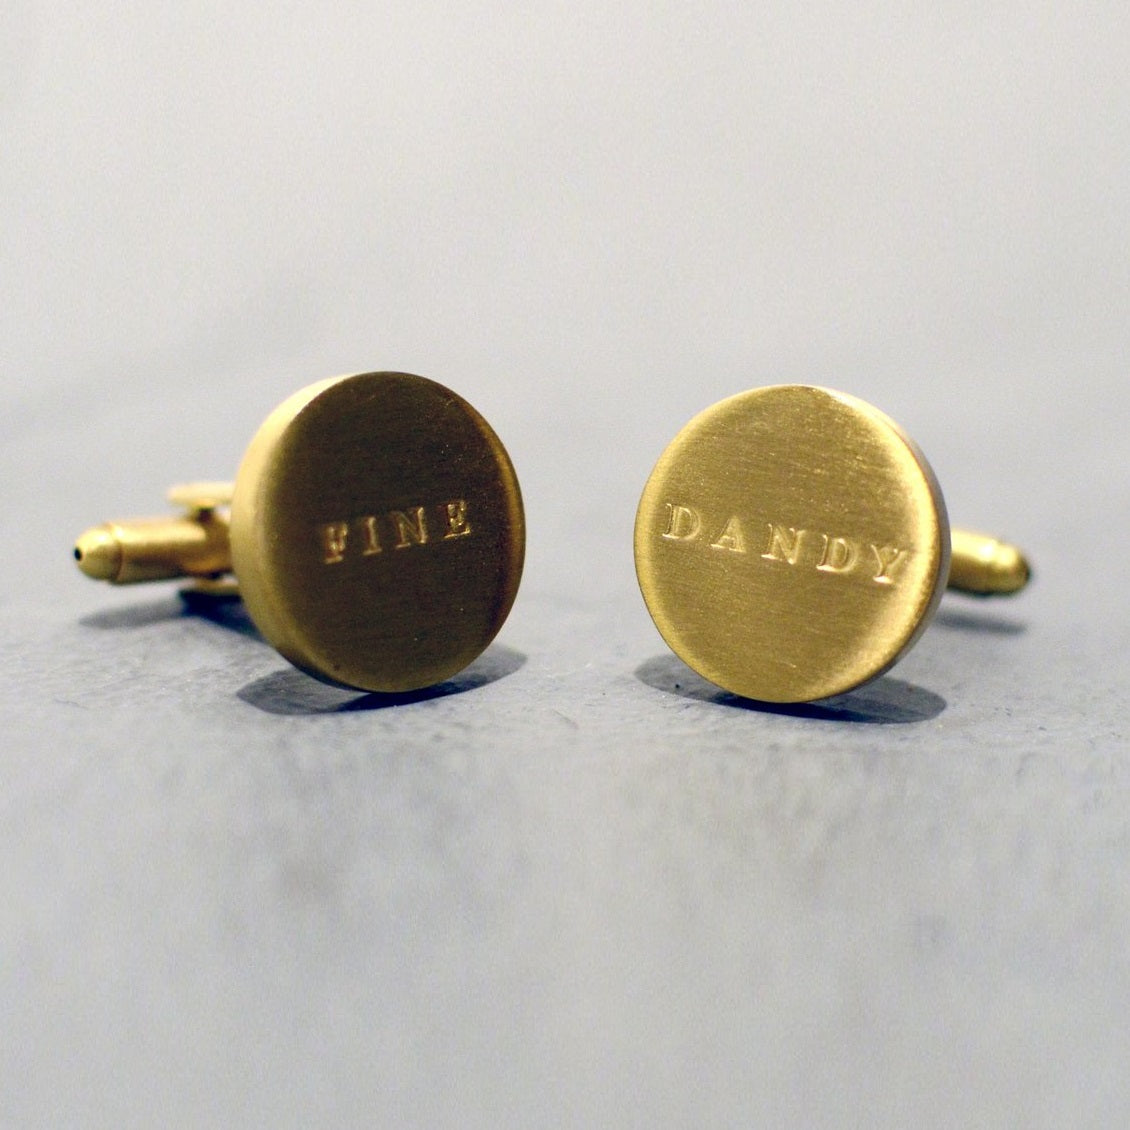 Cufflinks - Fine & Dandy